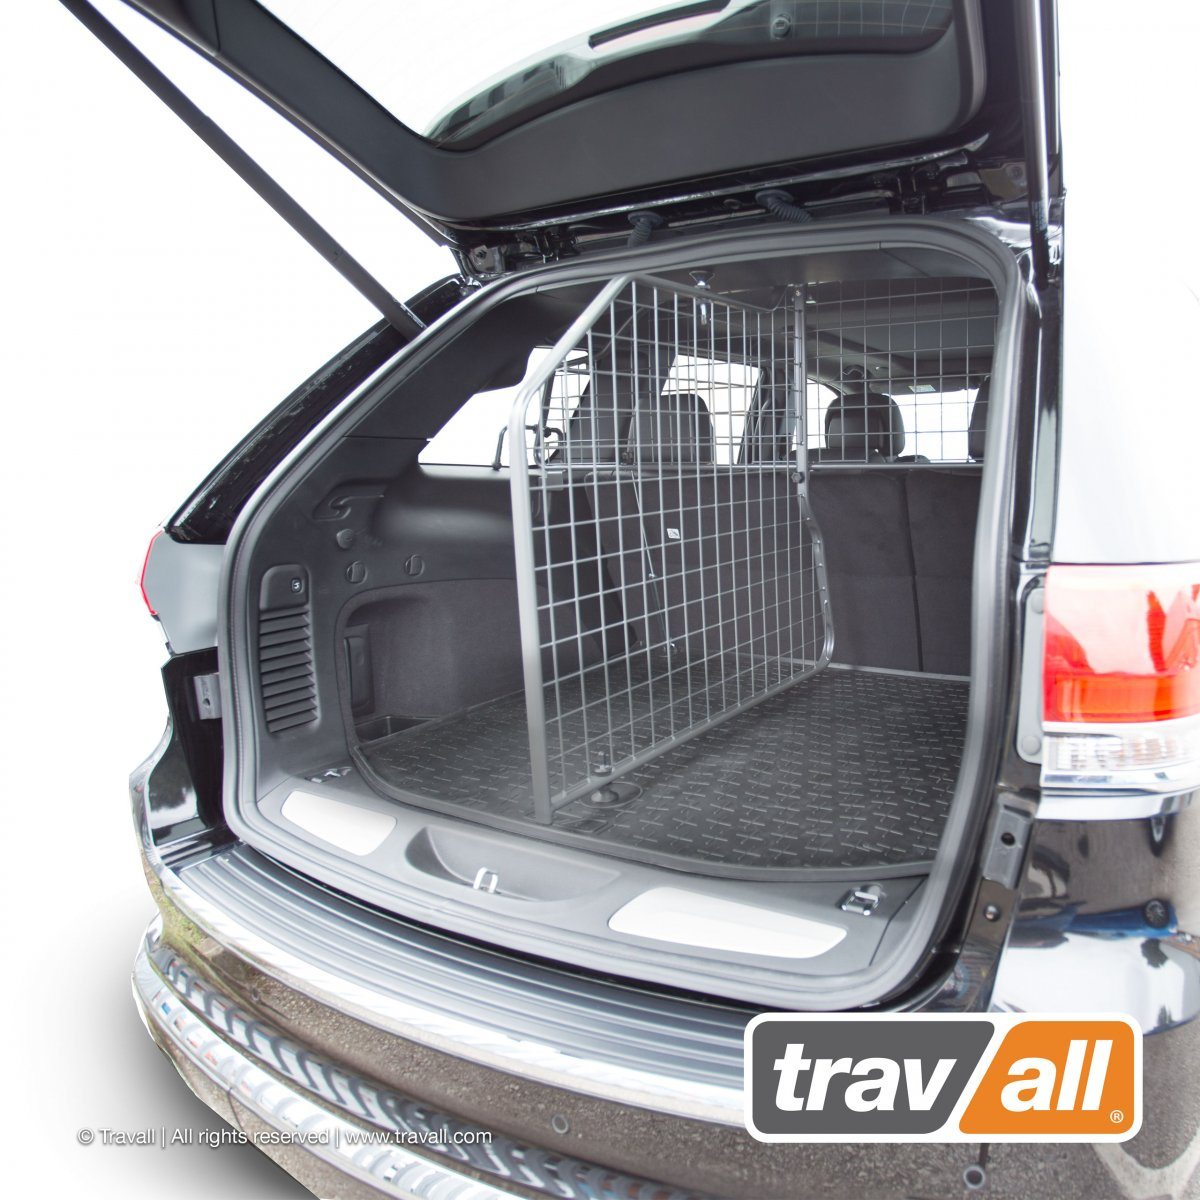 Travall® DIVIDER pour Jeep Grand Cherokee (2010 >) / SRT (2011 >)